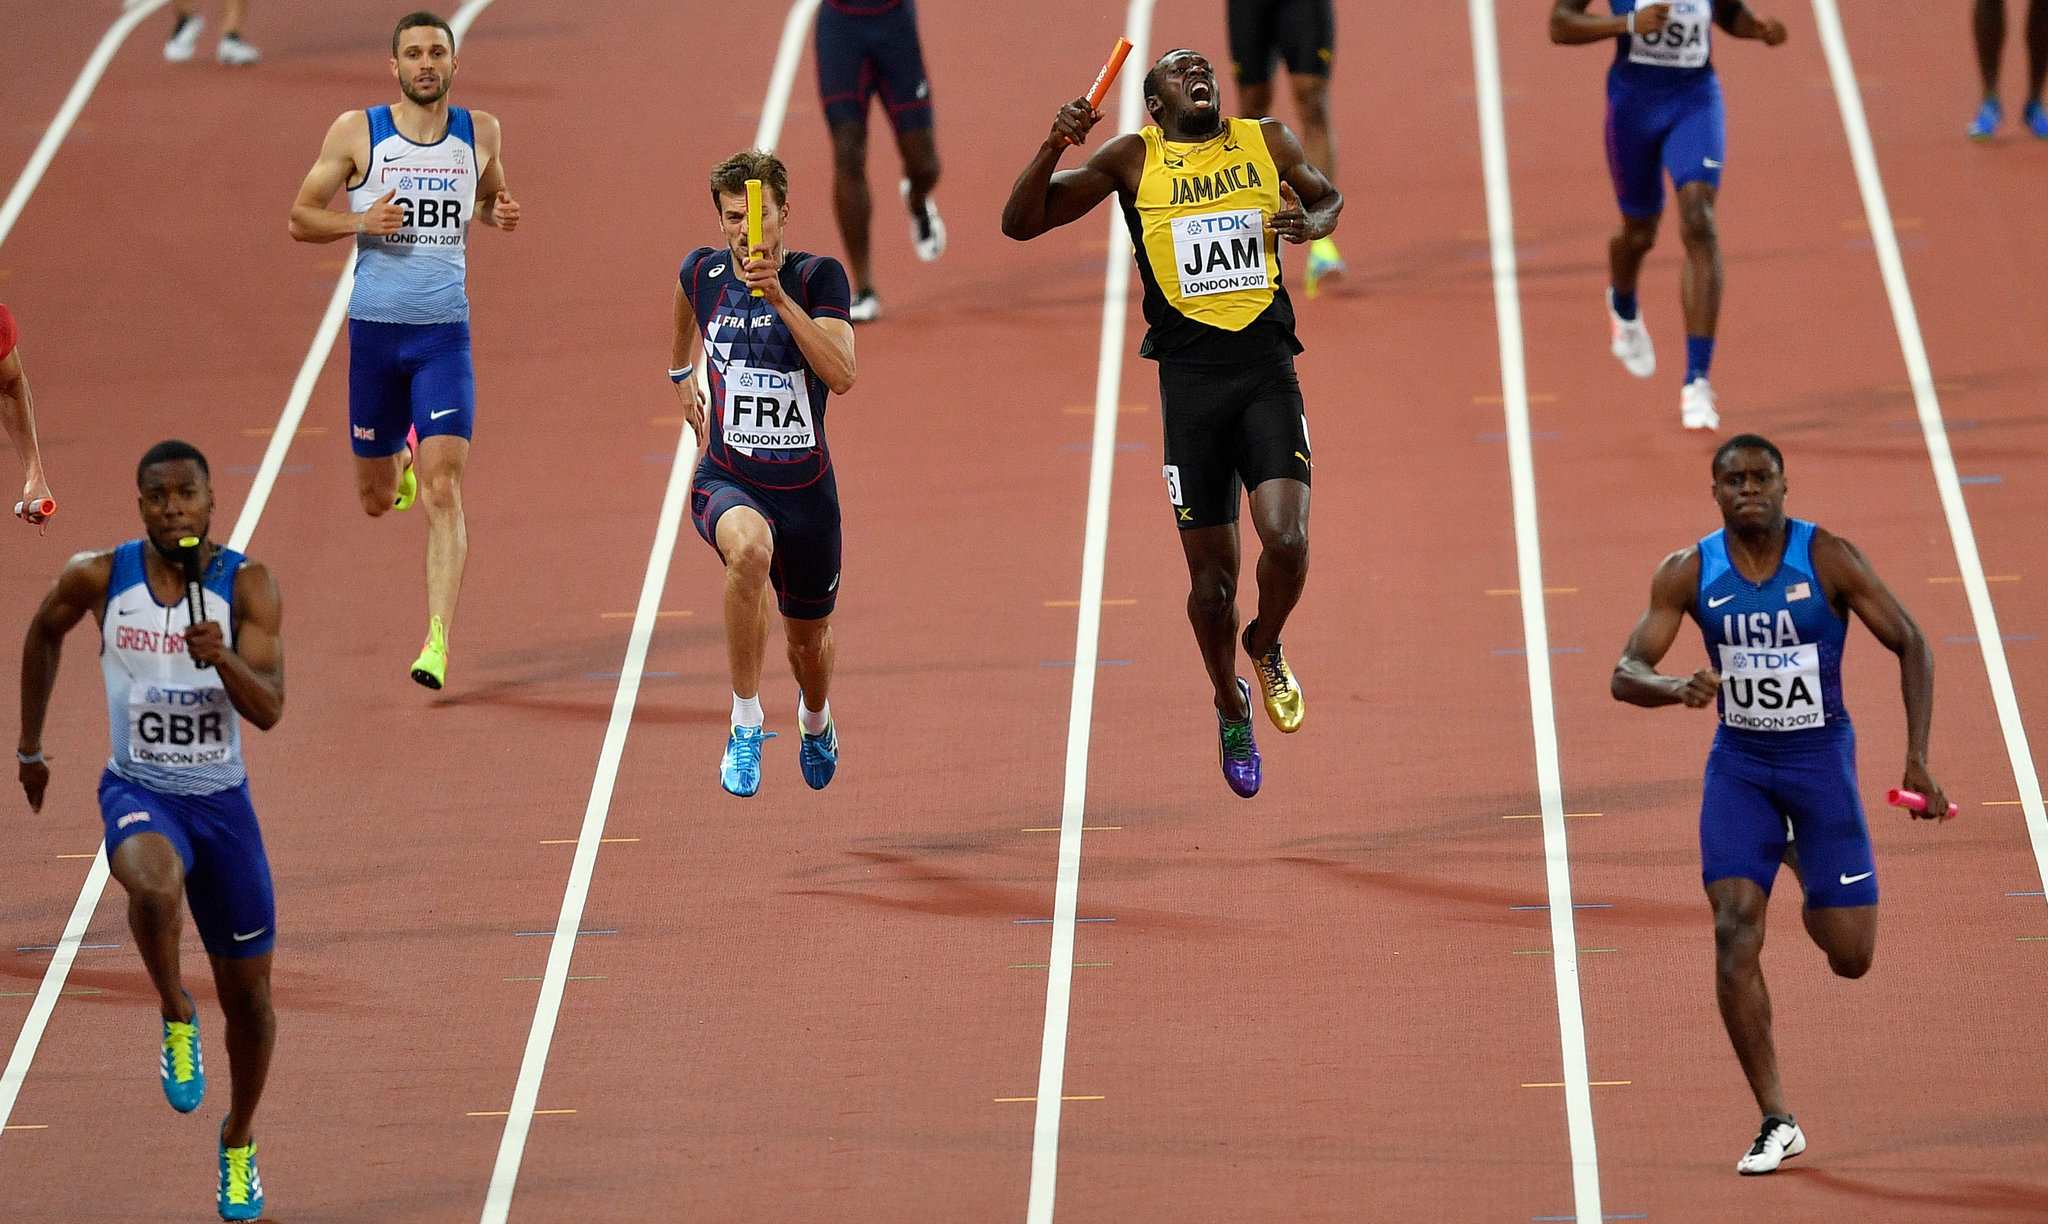 Usain Bolt pulling up with an apparent injury in the men's 4x100-meter relay final at the world track and field championships on Saturday. (Credit: Martin Meissner/Associated Press)